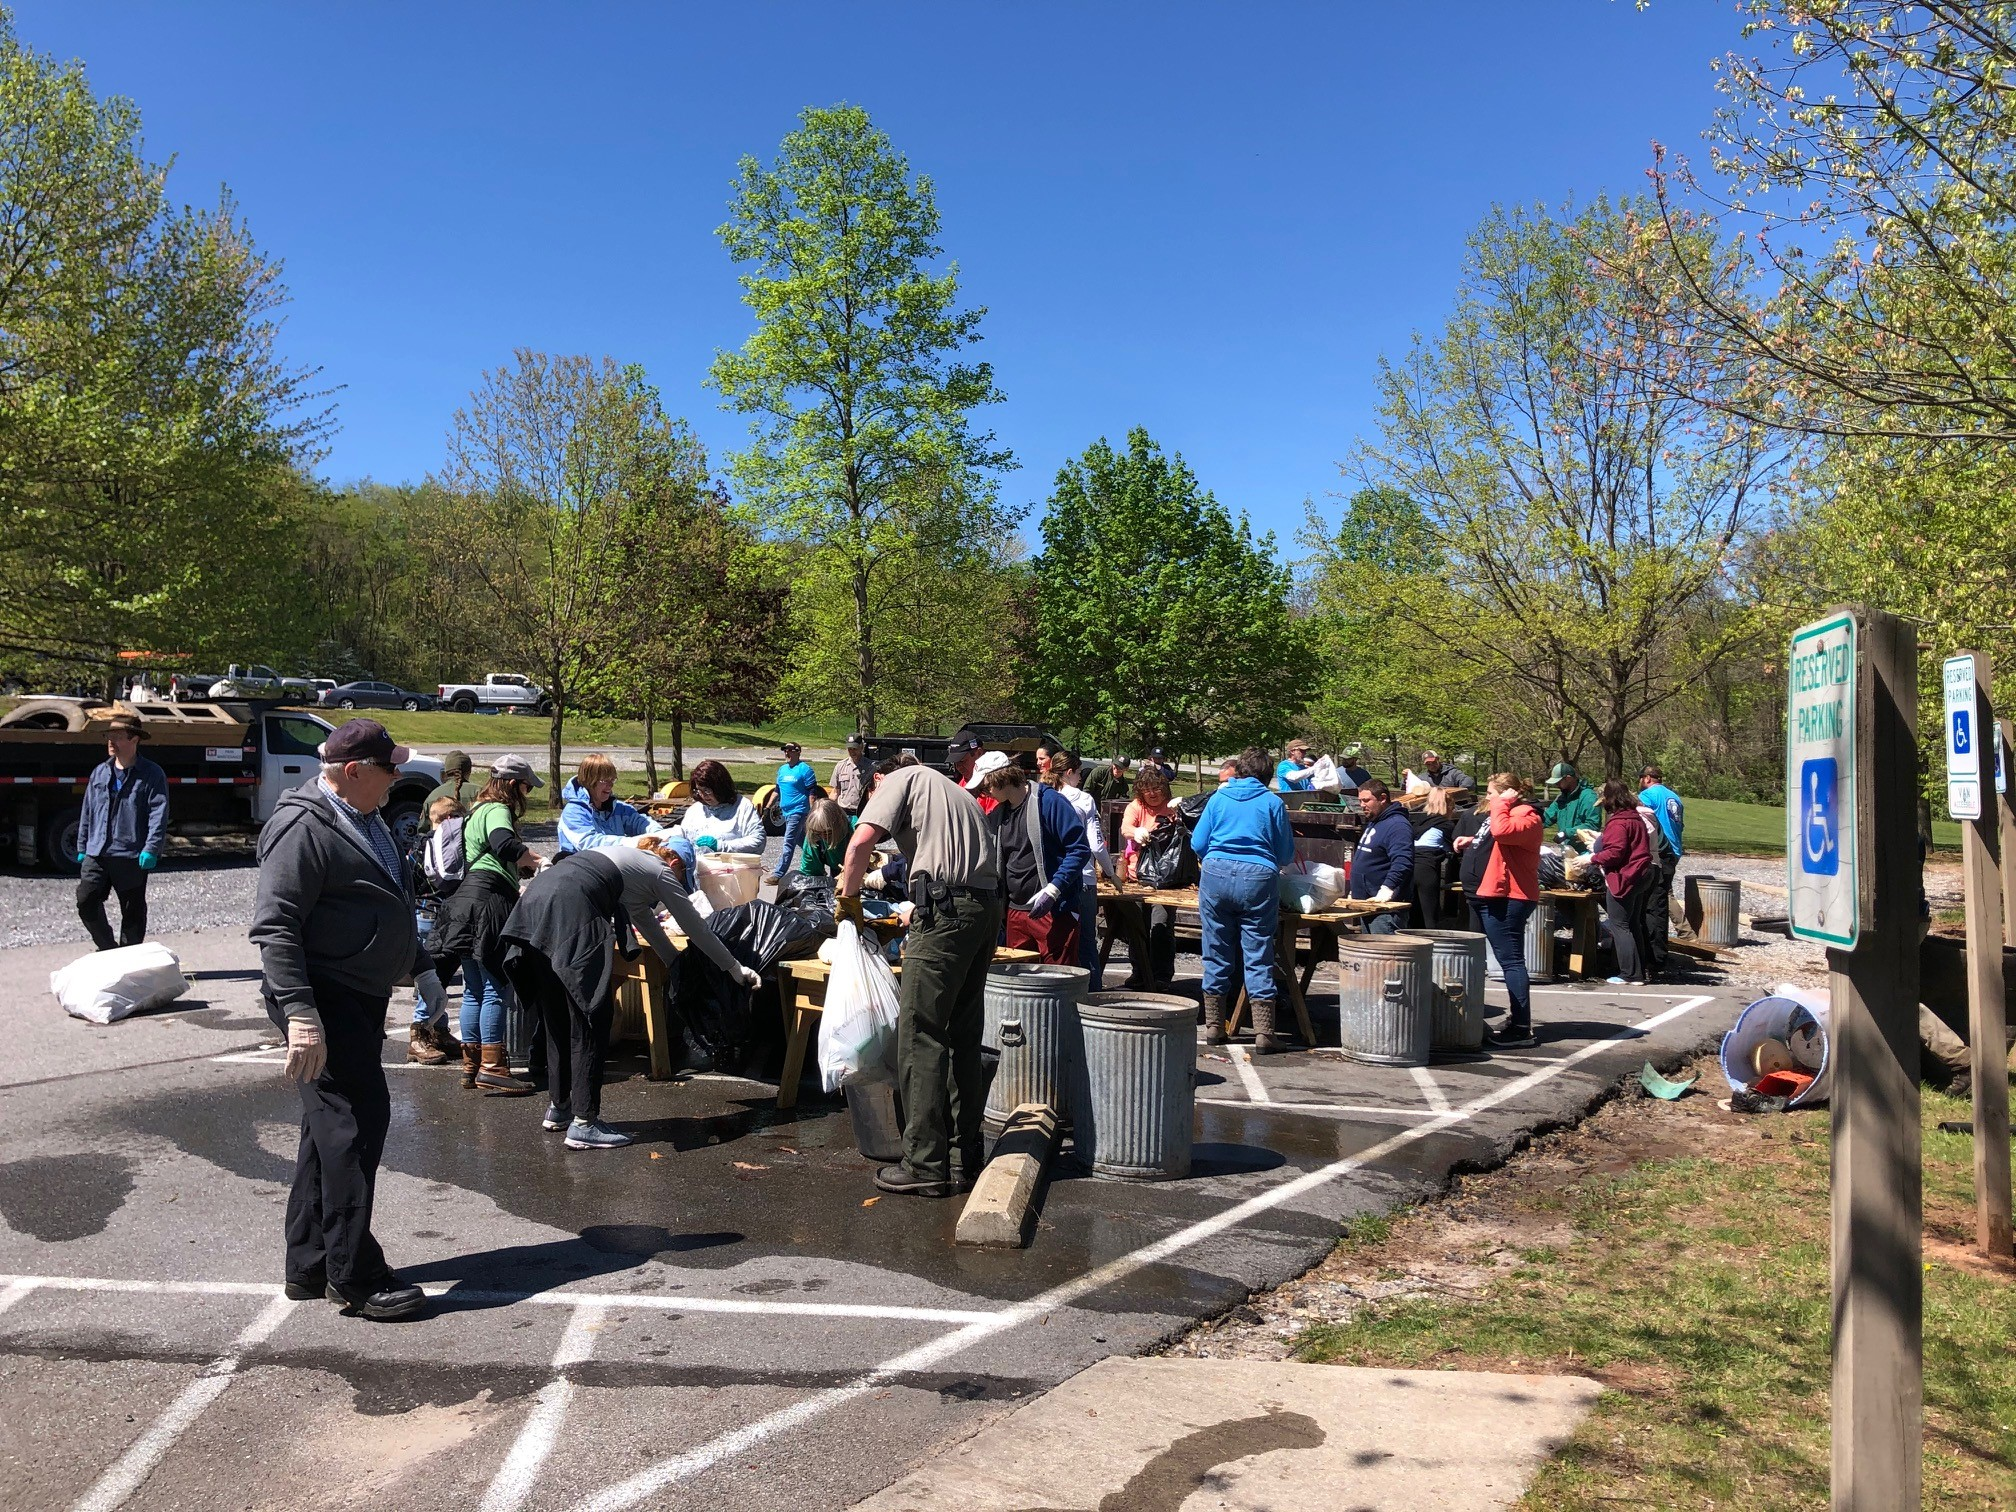 RaystownCleanup10 - Celebrating Earth Day in Pennsylvania